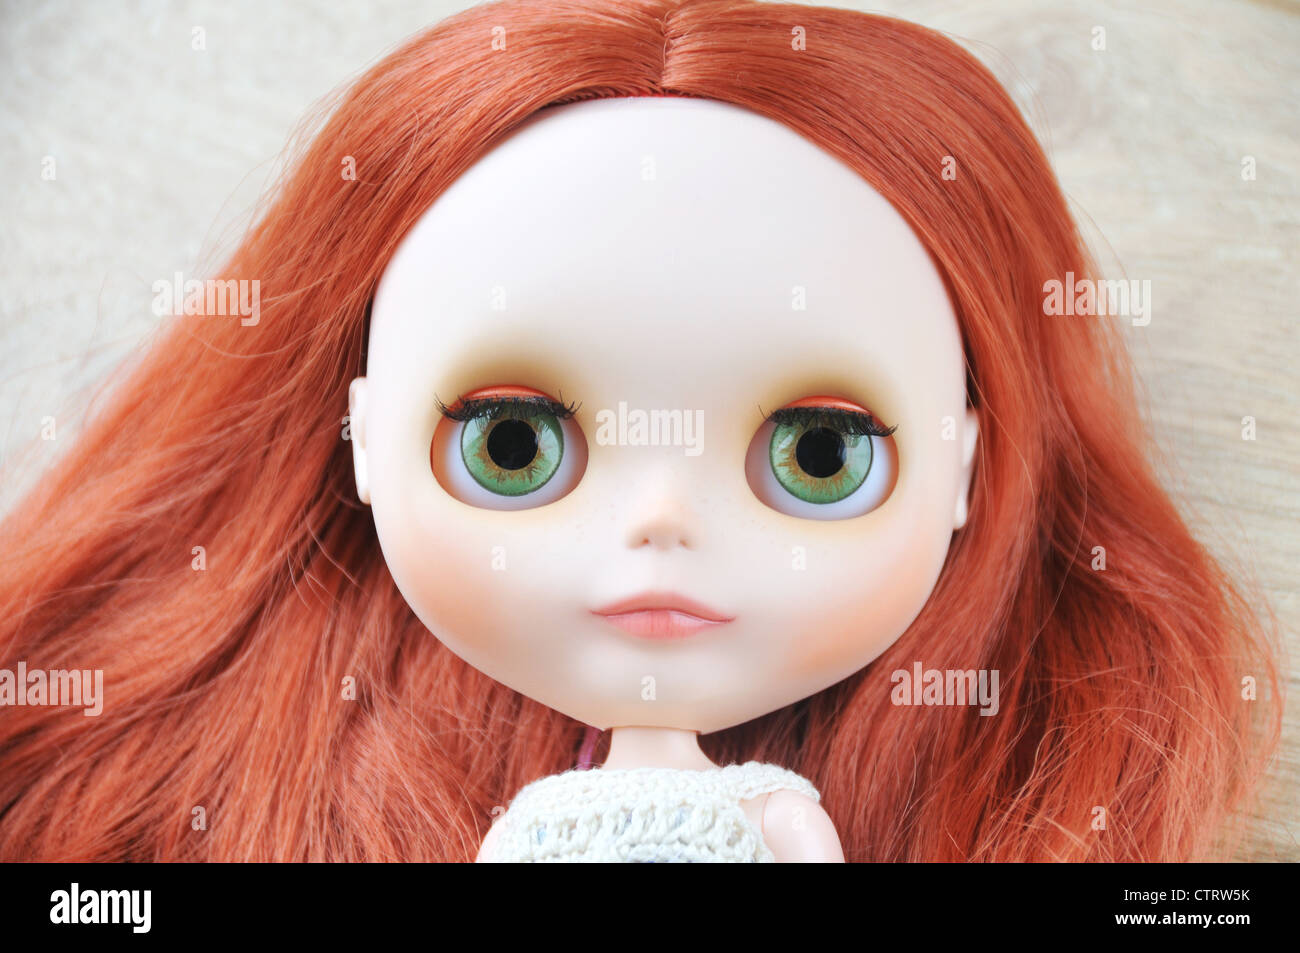 <b>Custom made</b> Blythe doll with chalk make up and new hand-painted eye chips - custom-made-blythe-doll-with-chalk-make-up-and-new-hand-painted-eye-CTRW5K